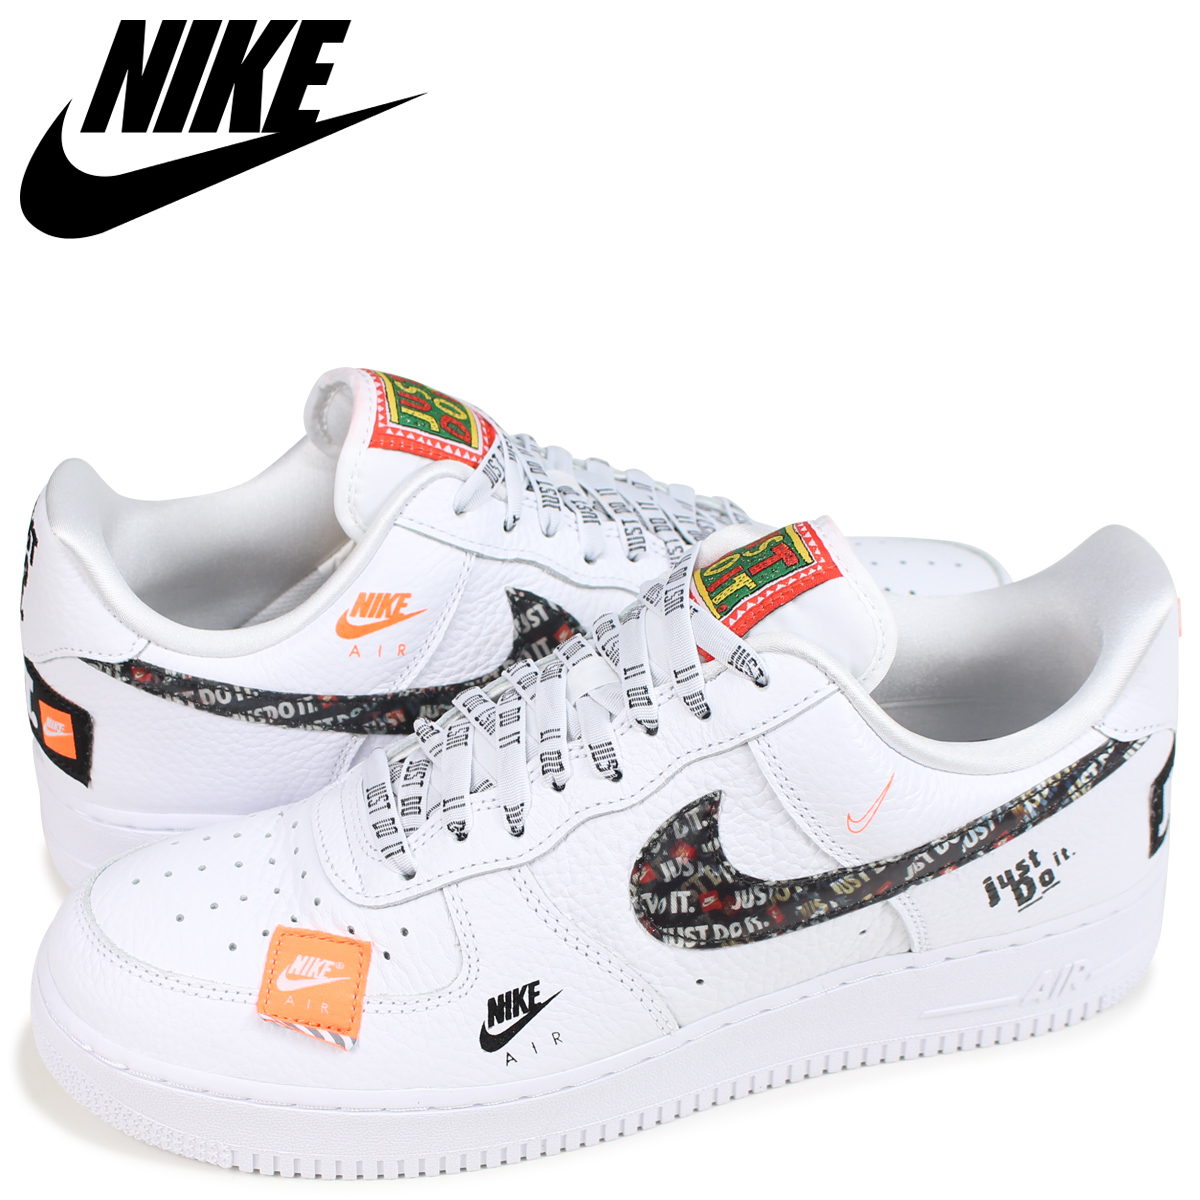 NIKE Nike air force 1 sneakers men AIR FORCE 1 07 PREMIUM JUST DO IT AR7719 100 white white